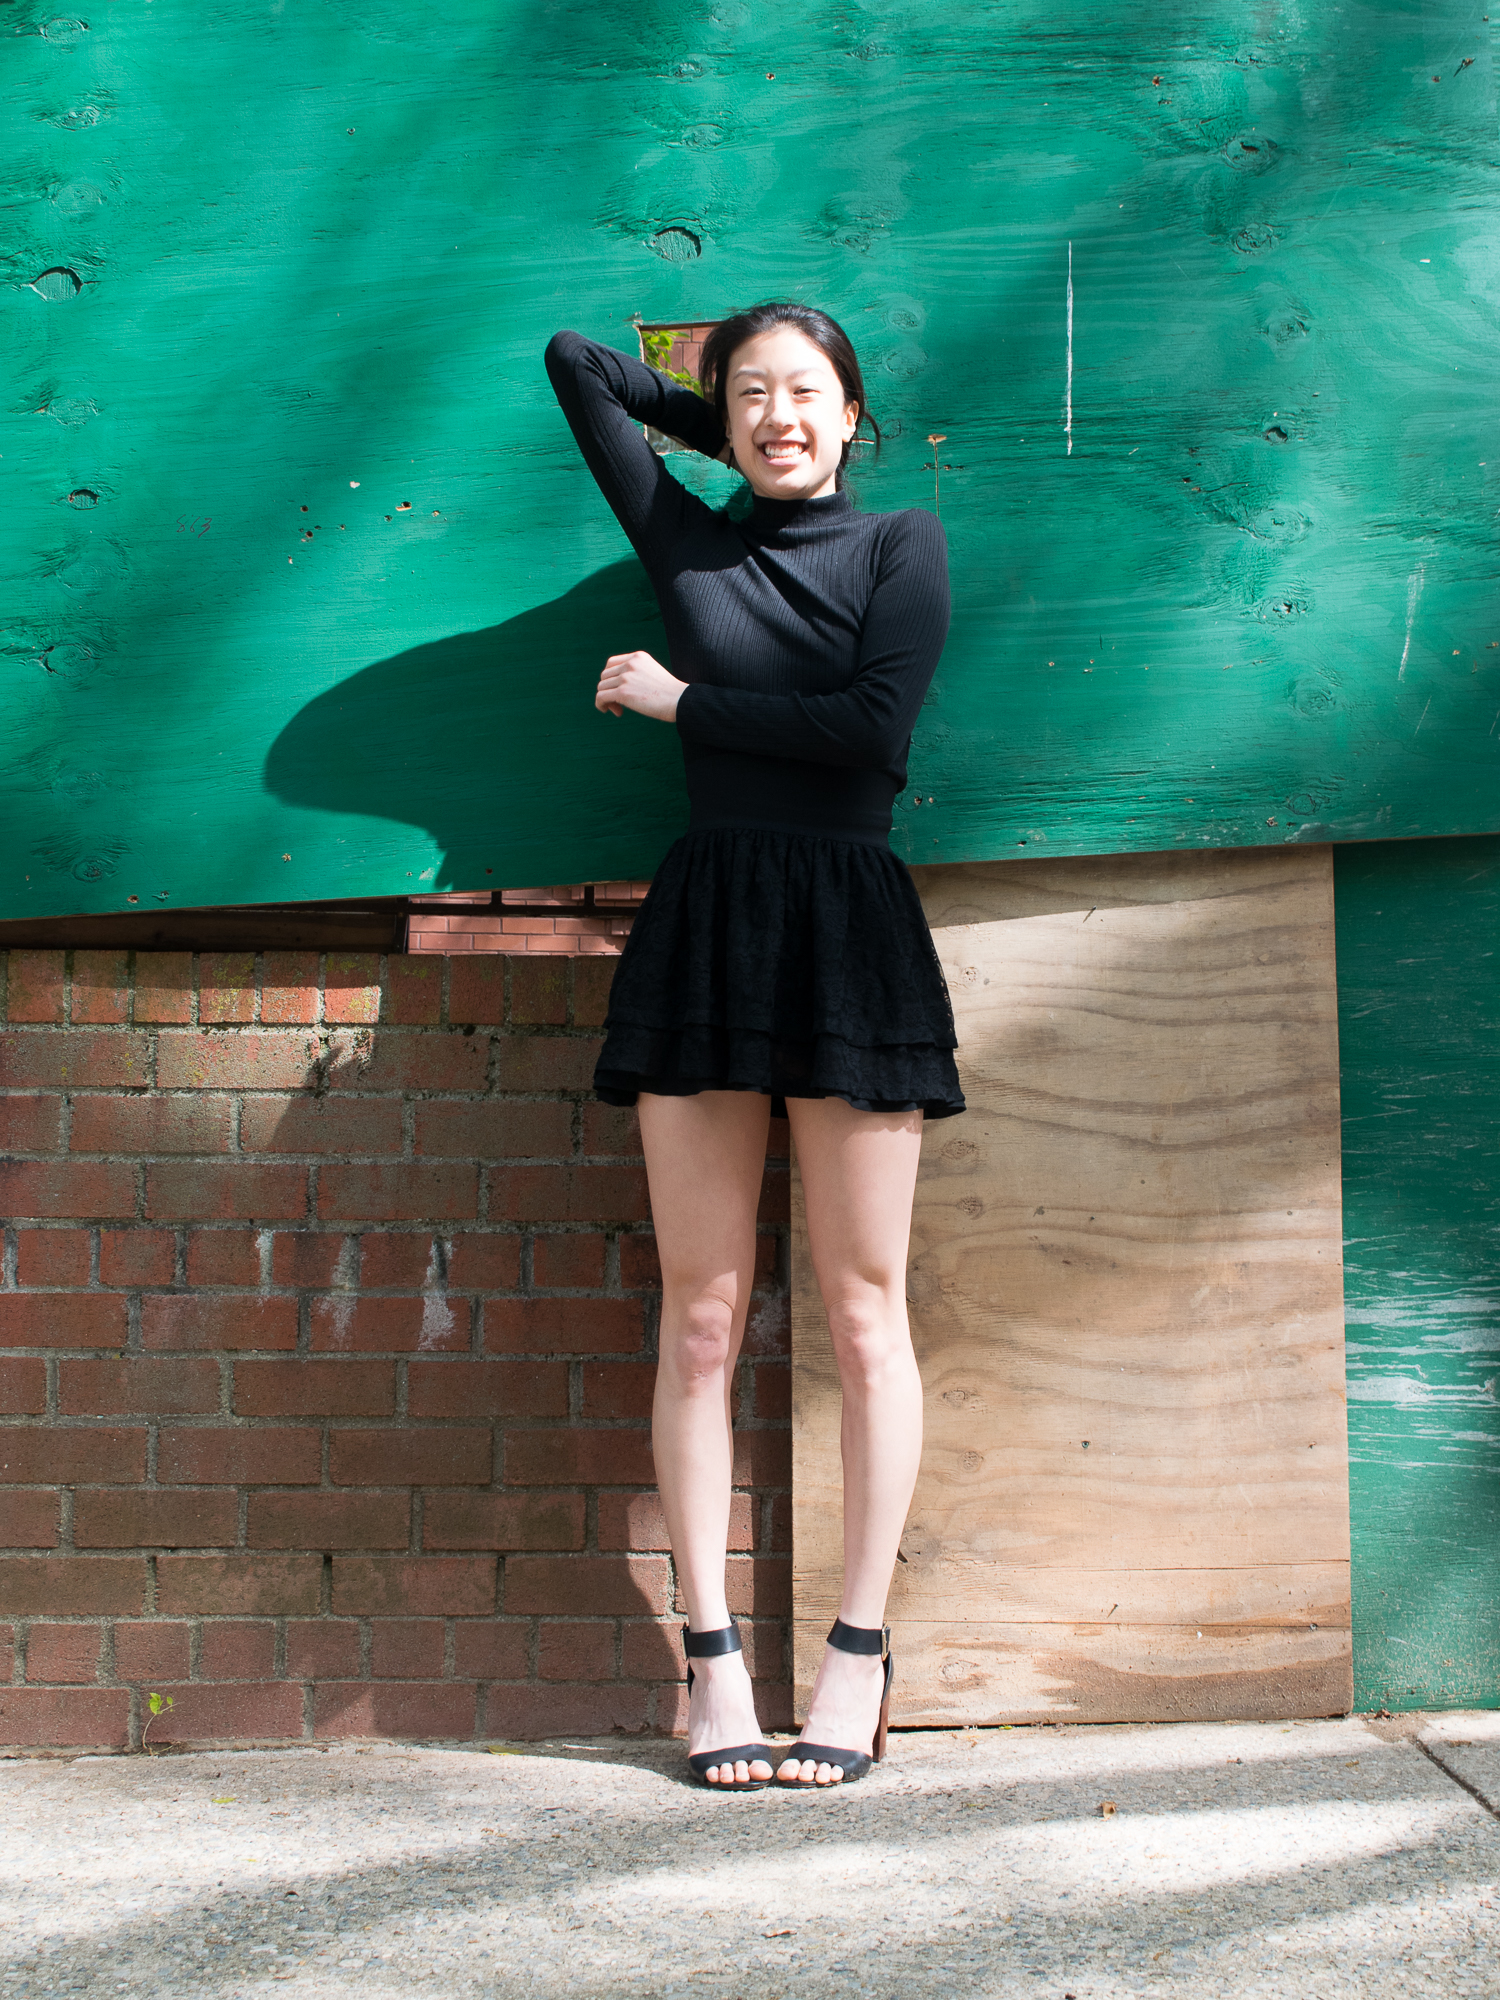 east asian female style blogger wearing all-black kpop-inspired pop punk outfit